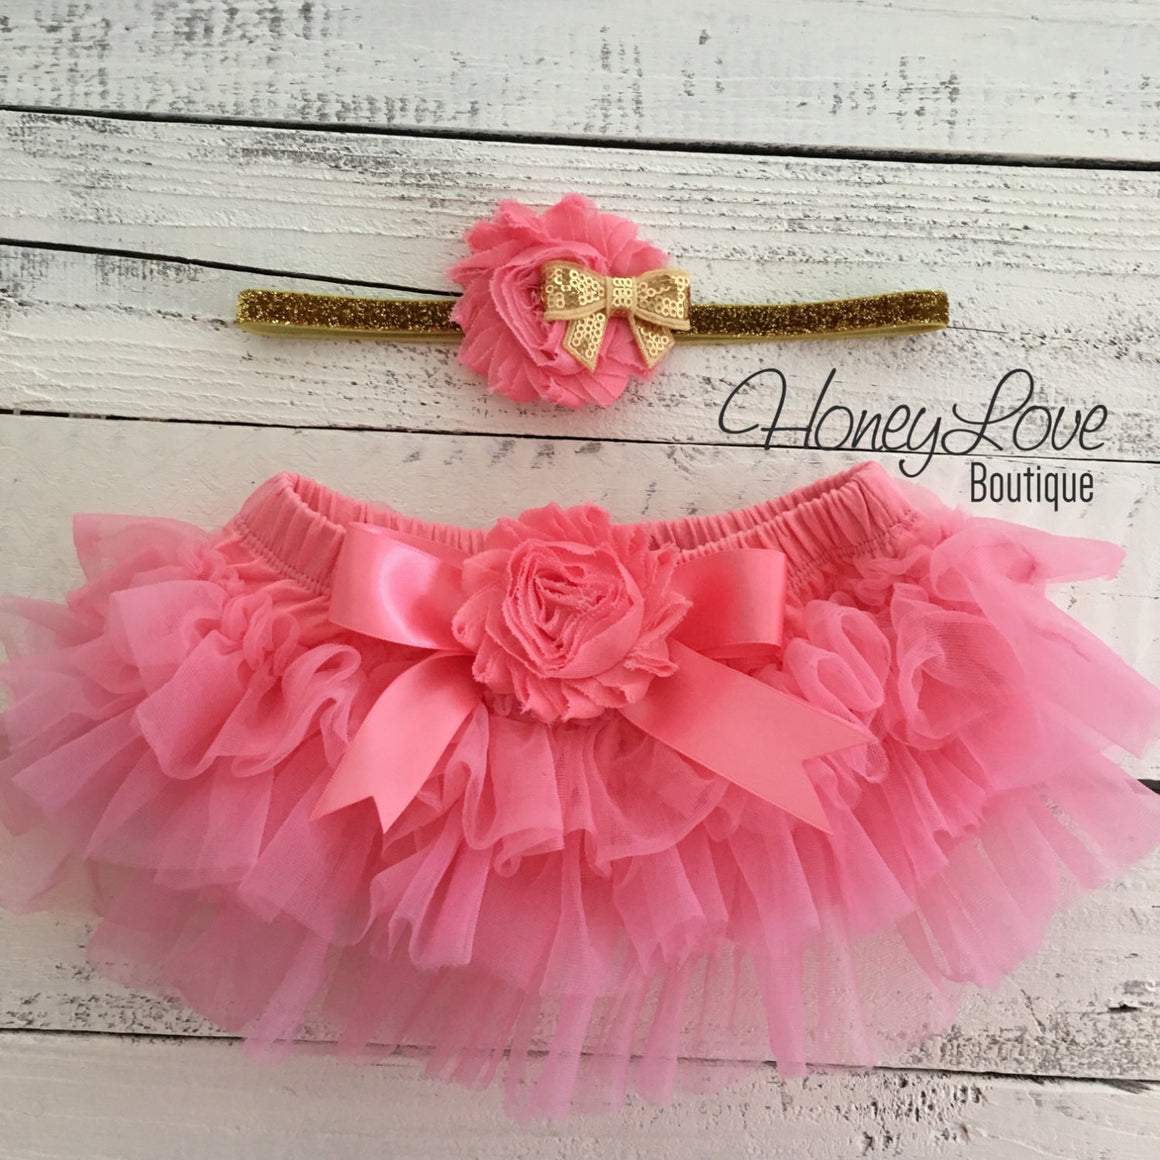 PERSONALIZED Name Outfit - Gold Glitter and Coral Pink - embellished tutu skirt bloomer - HoneyLoveBoutique